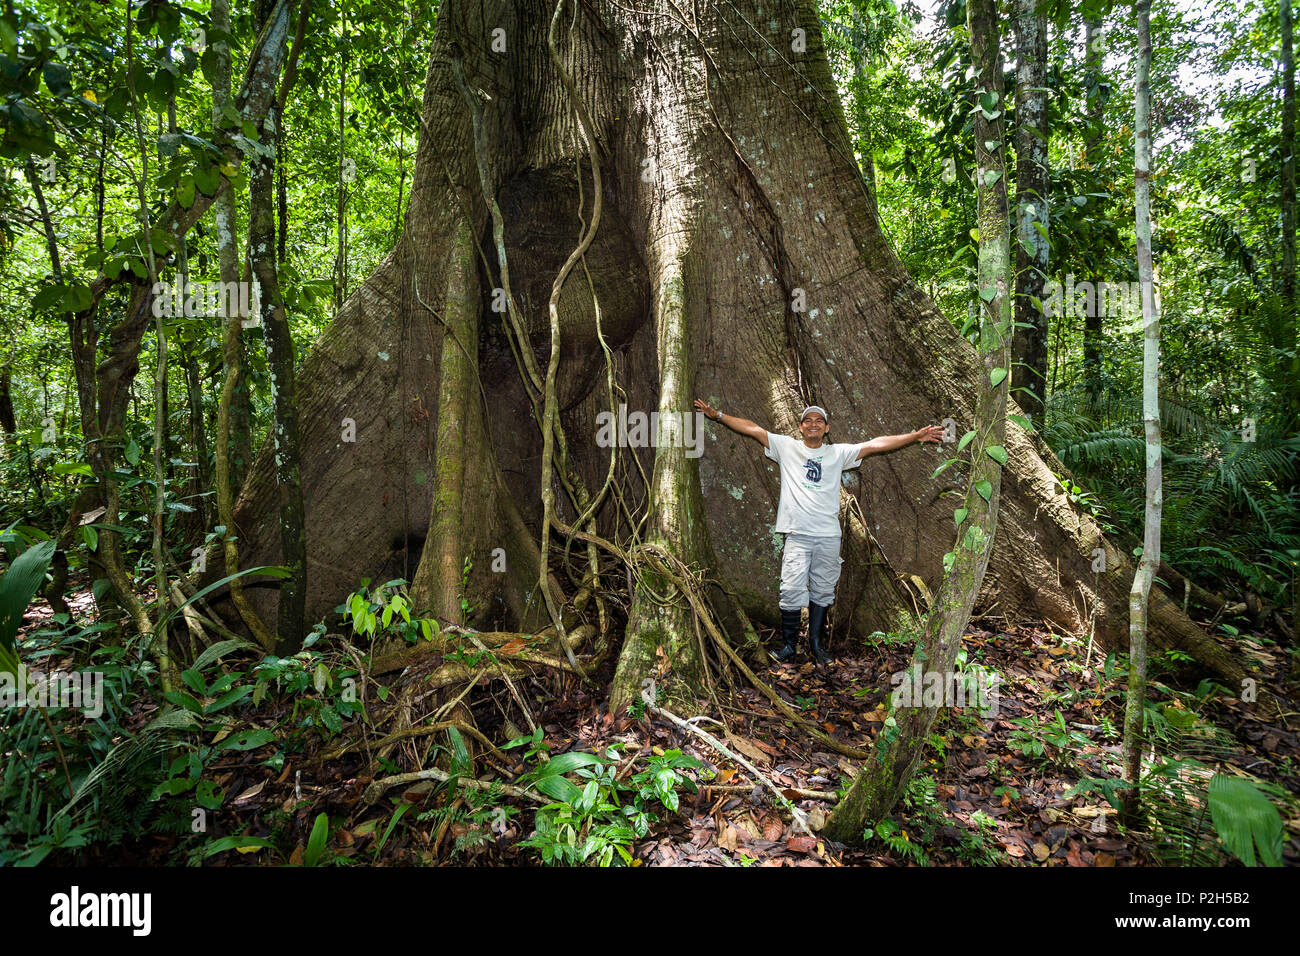 Giant tree with buttress roots in the rainforest at Tambopata river, Tambopata National Reserve, Peru, South America Stock Photo